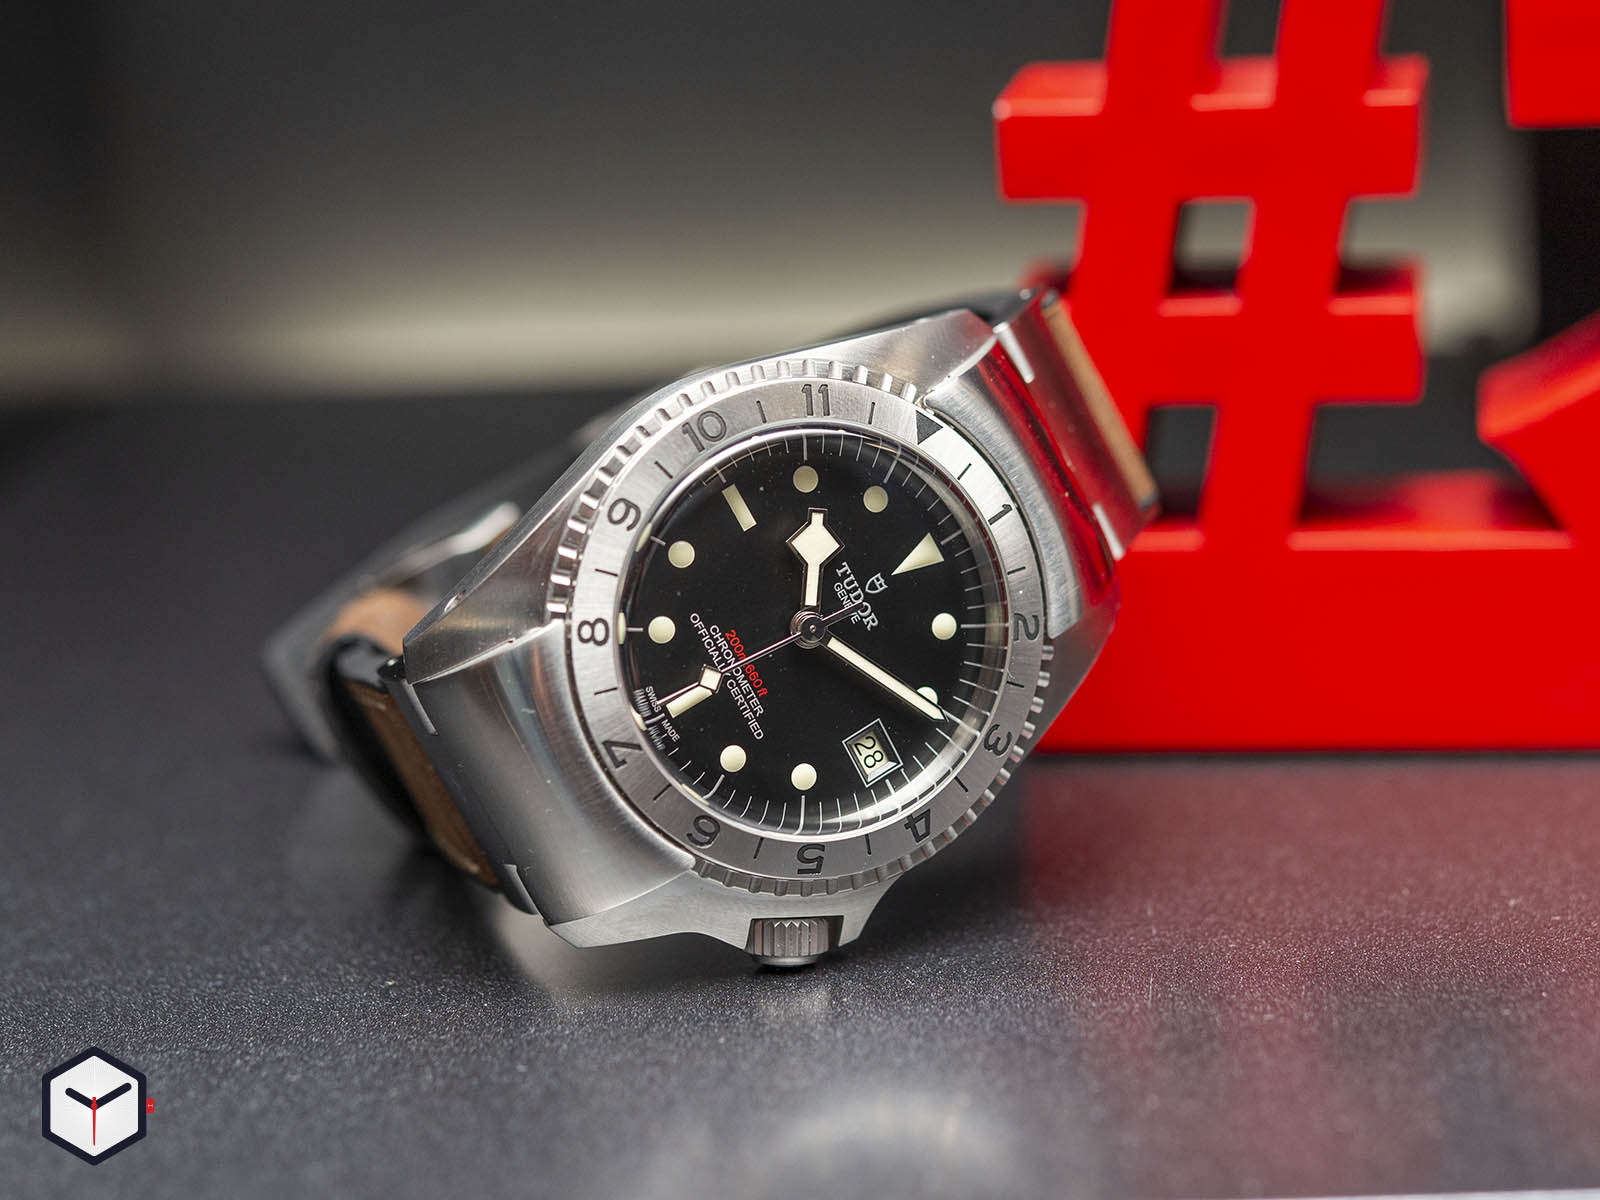 m70150-0001-tudor-black-bay-p01-baselworld-2019-1.jpg